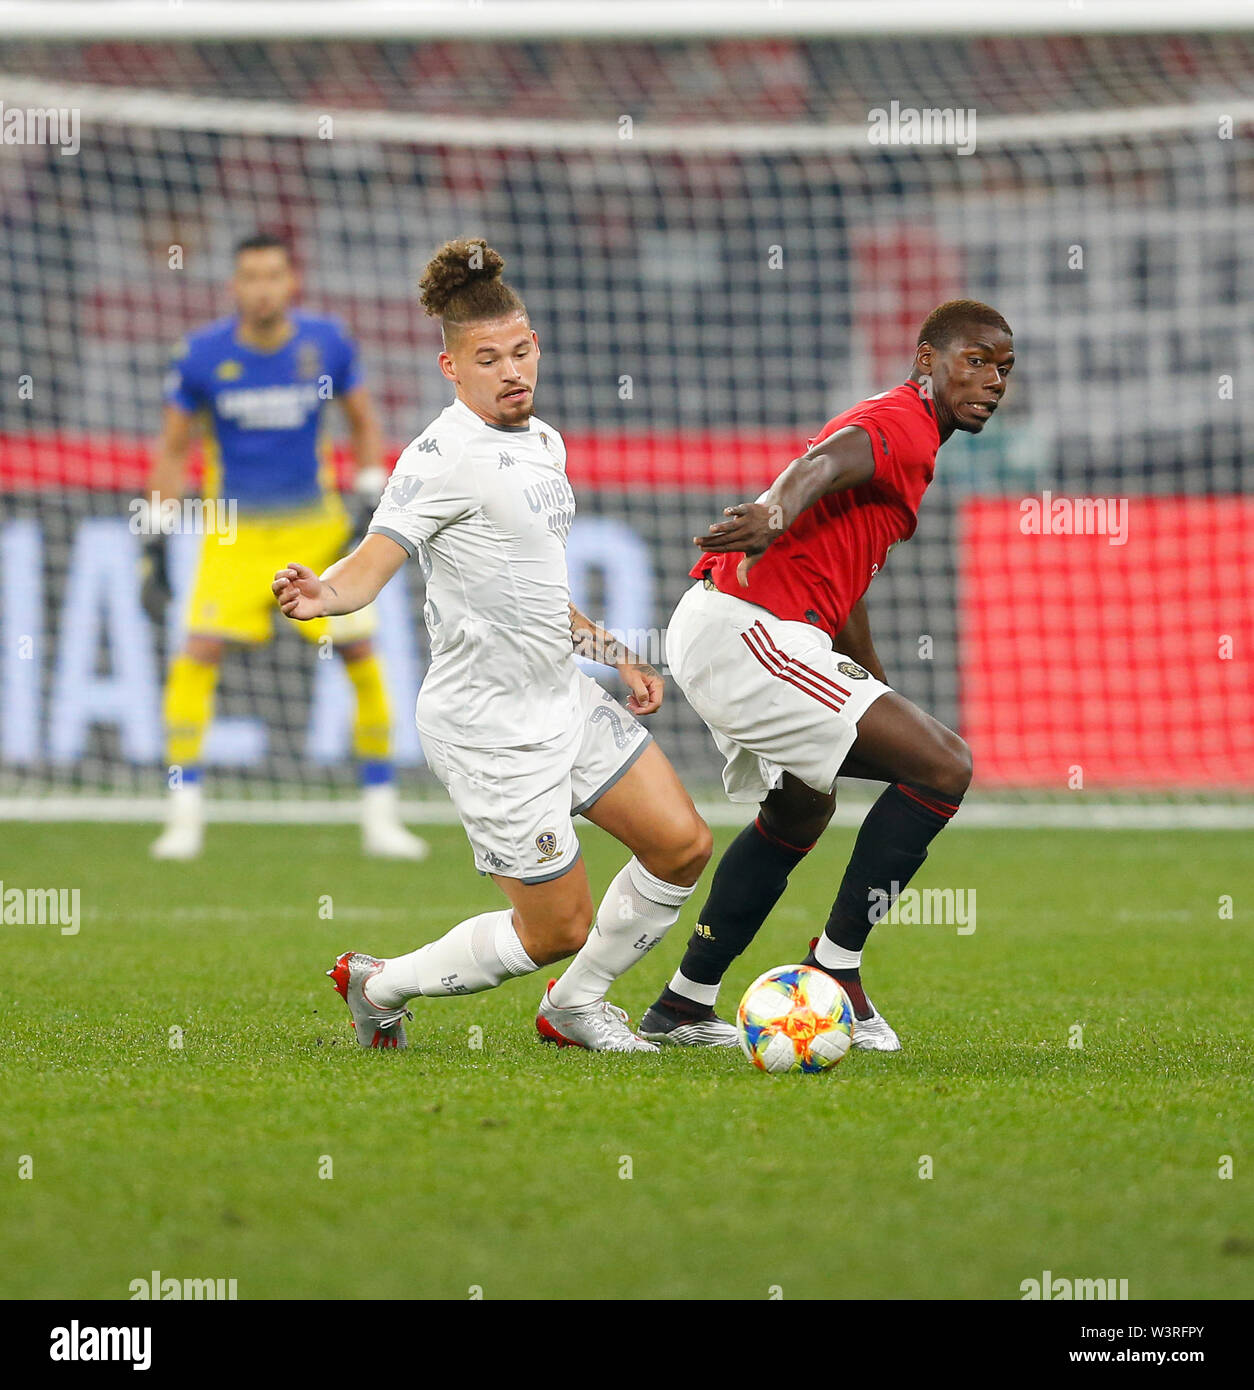 Optus Stadium, Burswood, Perth, W Australia. 17th July 2019. Manchester United versus Leeds United; pre-season tour; Kalvin Phillips of Leeds United chases the loose ball ahead of Paul Pogba of Manchester United Credit: Action Plus Sports Images/Alamy Live News Stock Photo